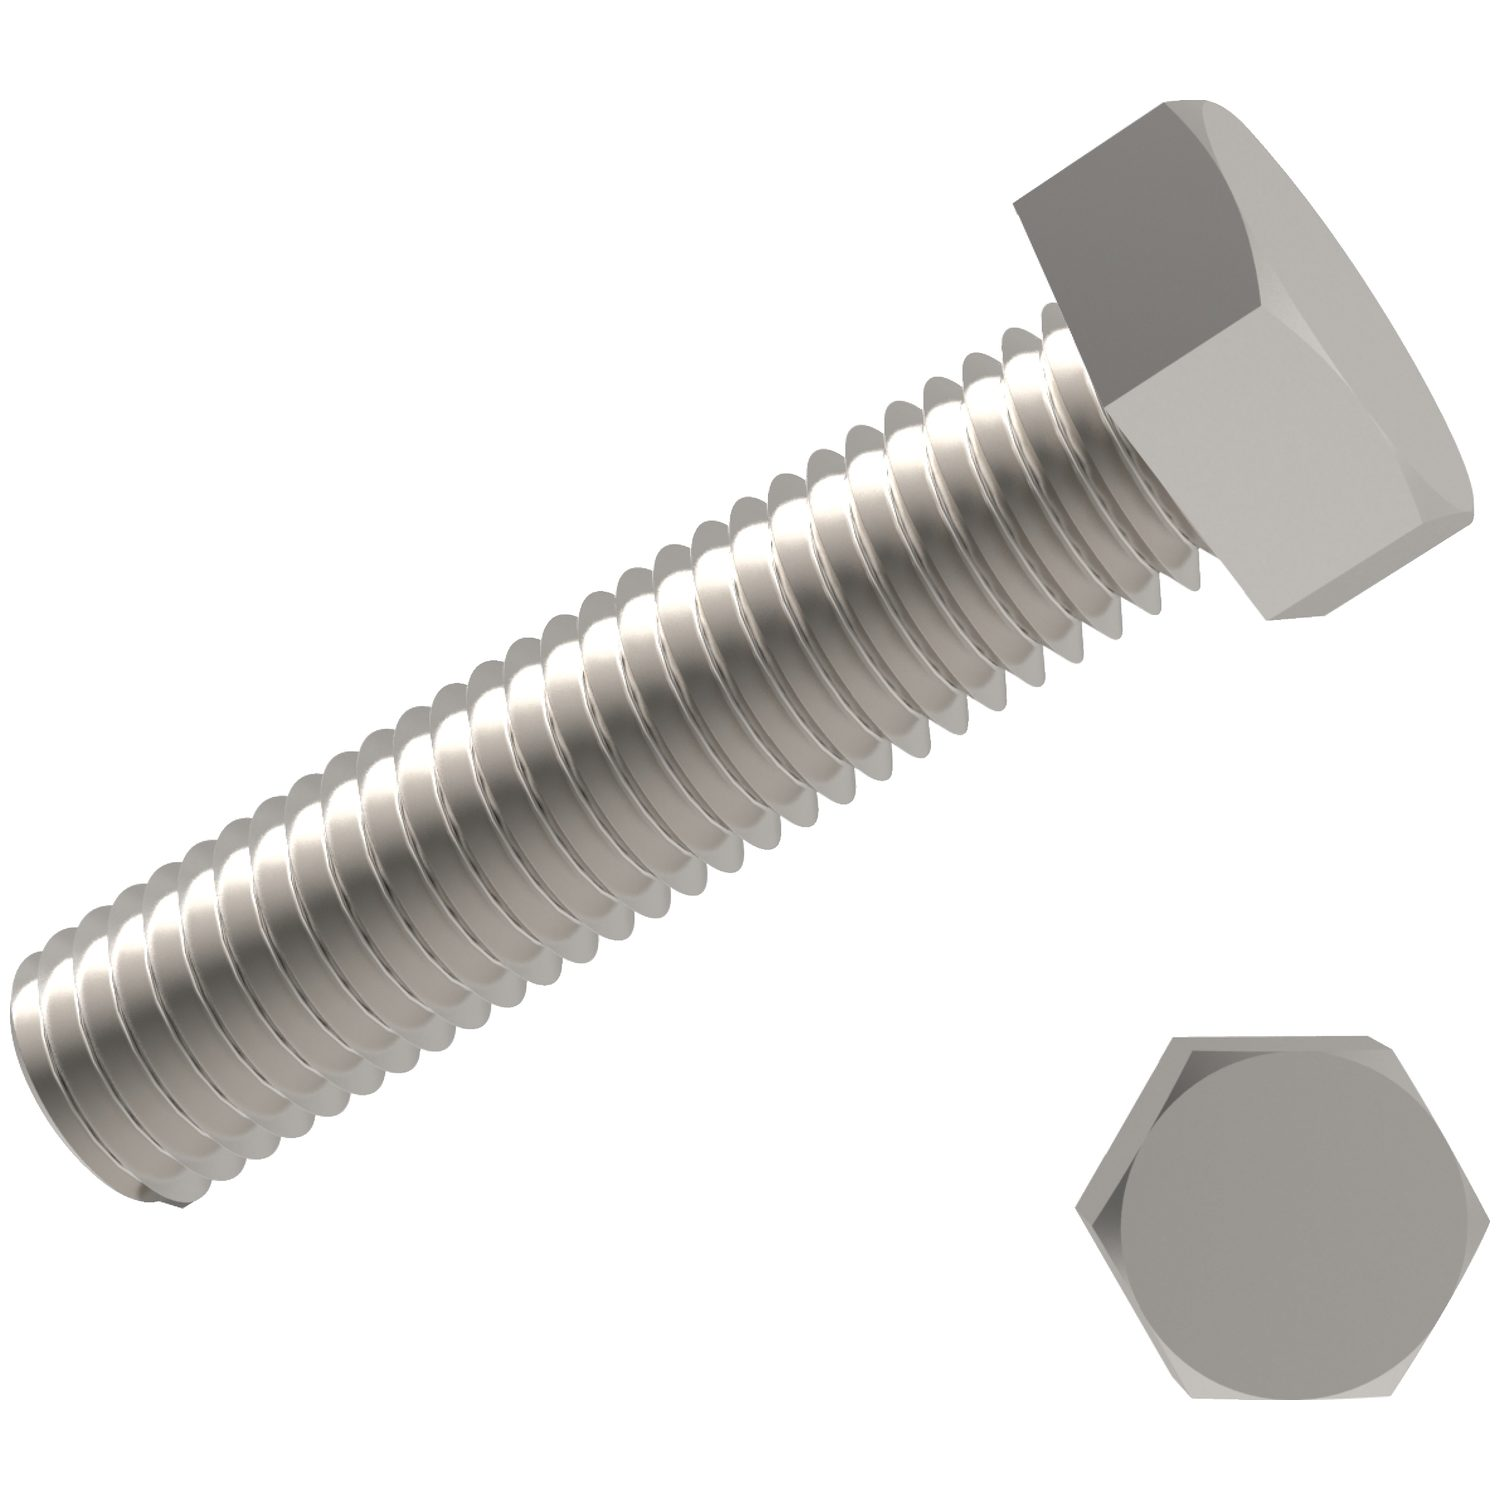 Hex. Head Set Screws